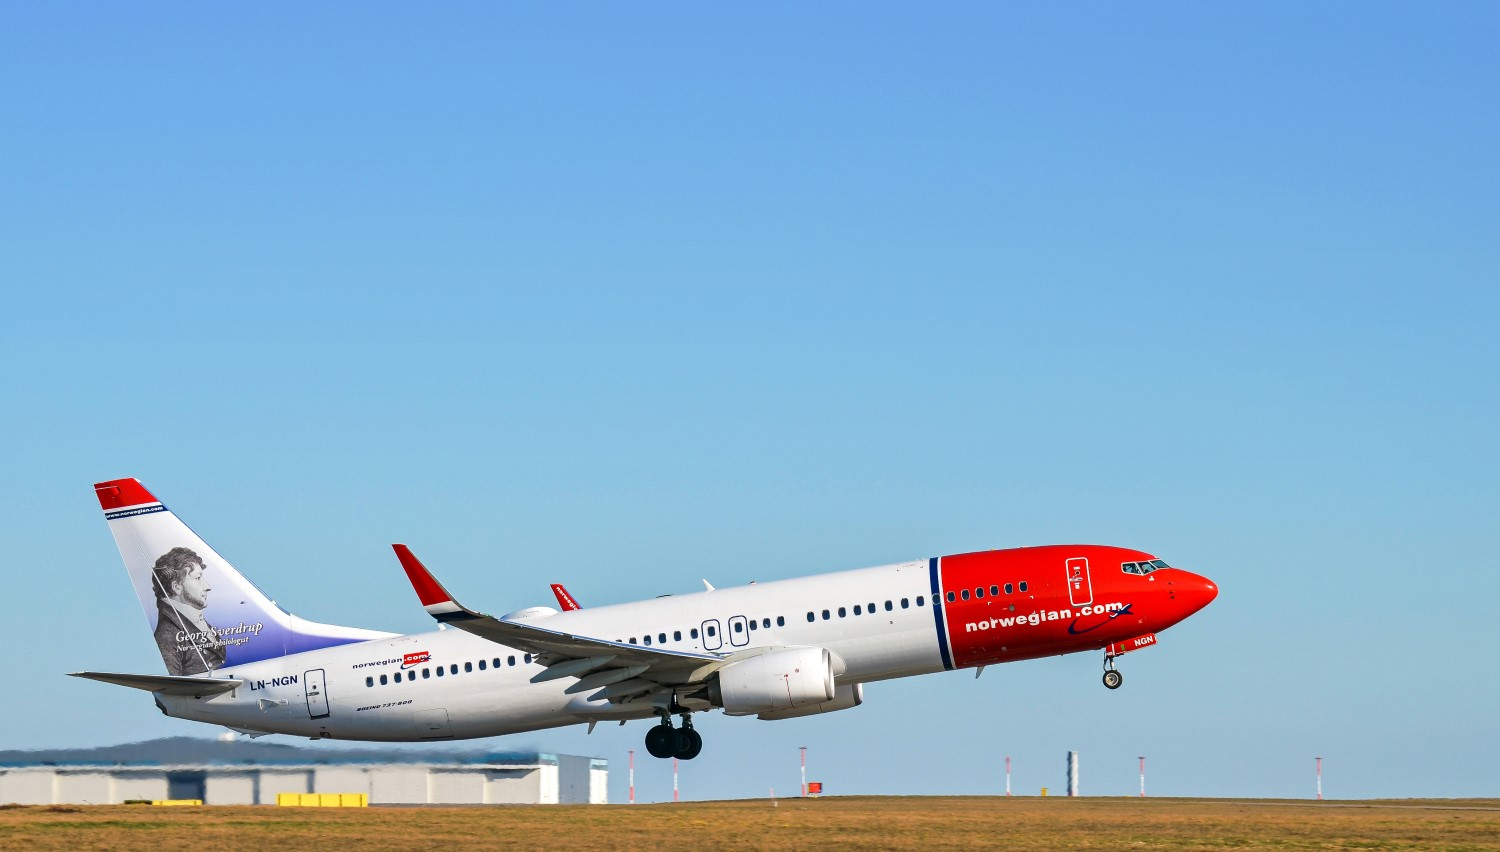 Norwegian Air's future and profitability